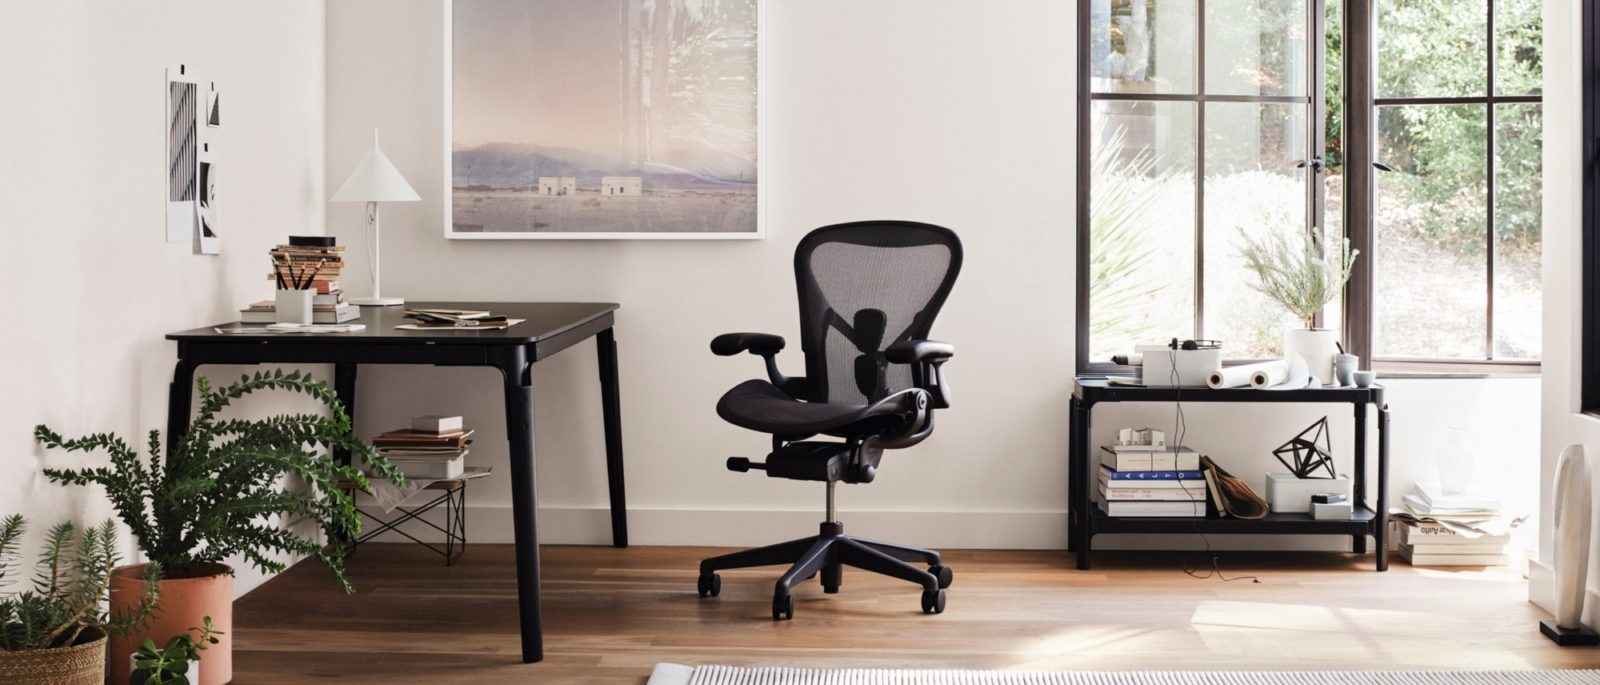 An image of a home office with an Aeron chair.